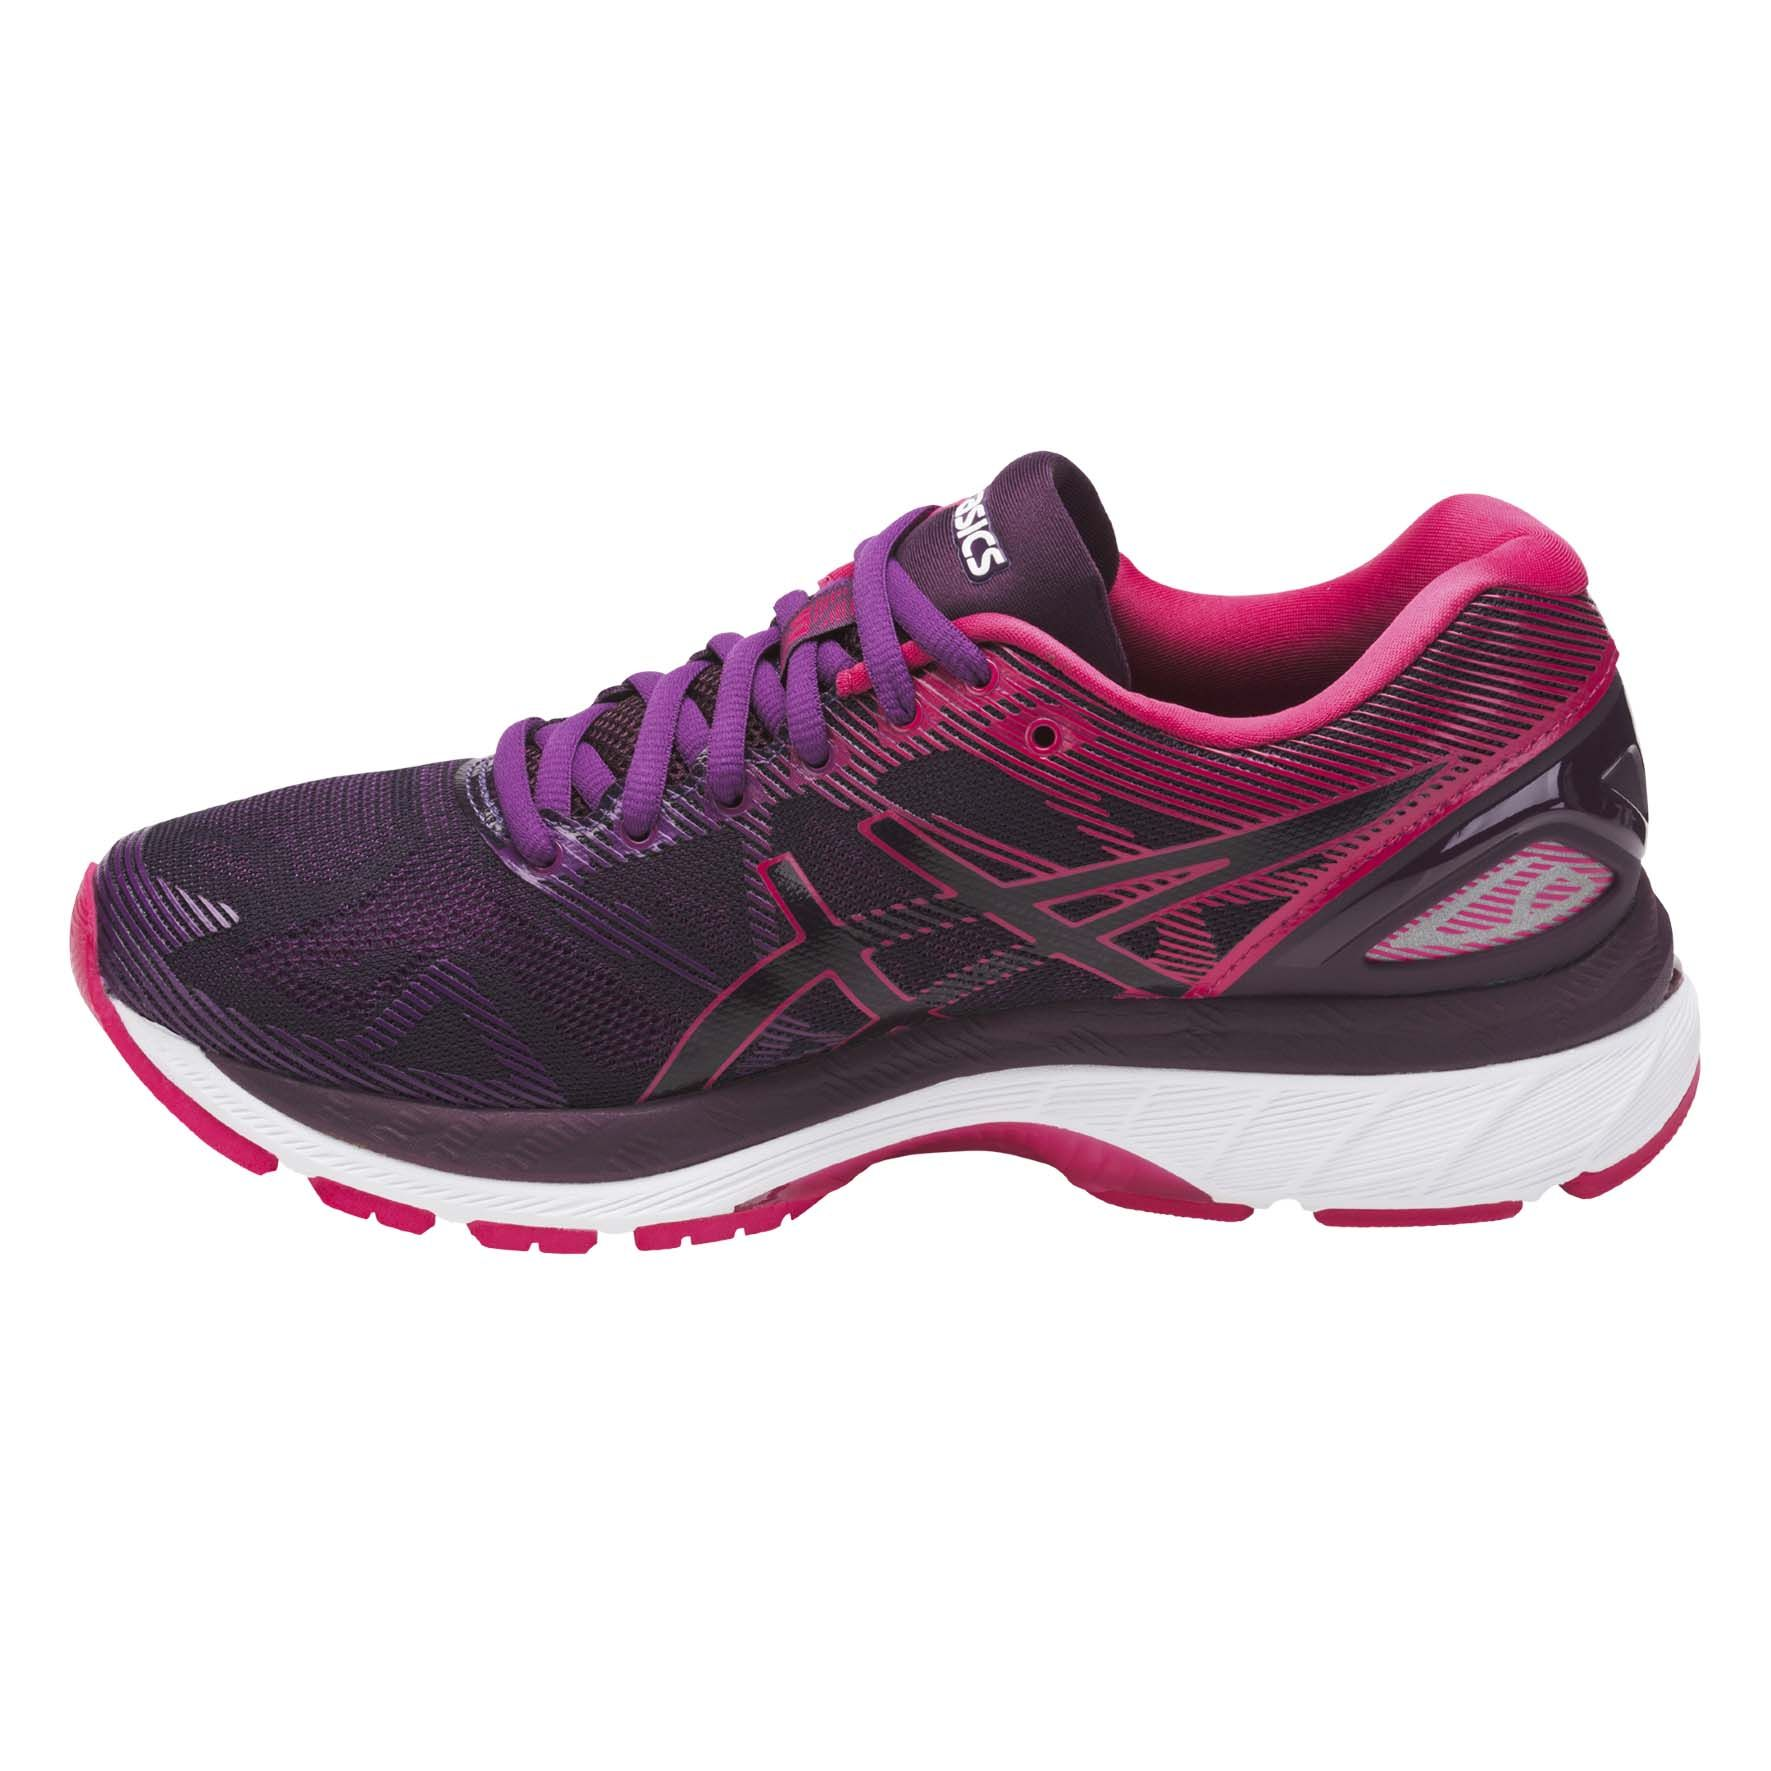 Asics Forefoot Running Shoes